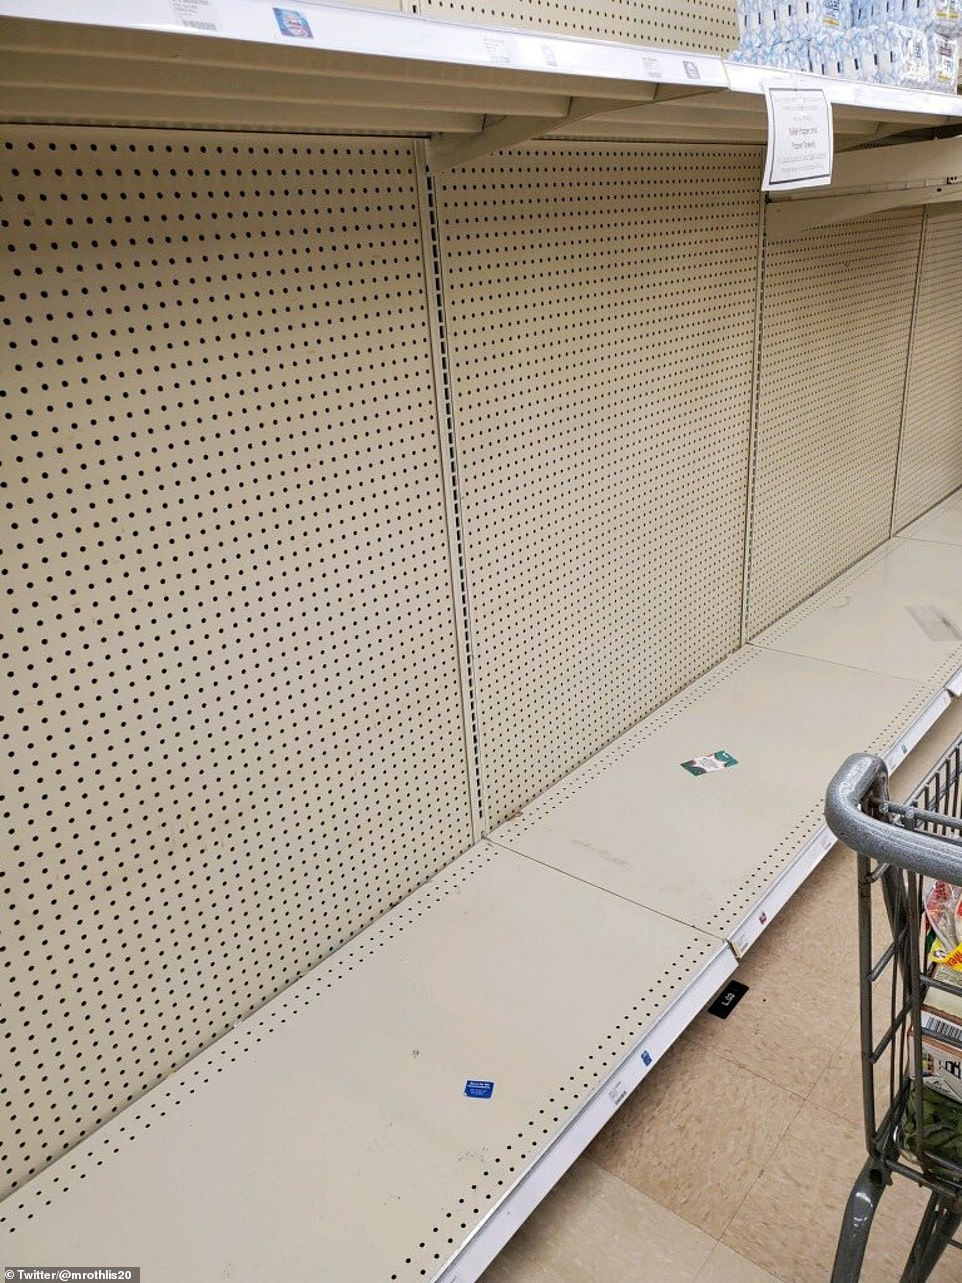 Ohio:It is the second time this year that shoppers appear to be panic buying; stores were left scrambling to restock shelves wiped out in response to COVID-19 back in March